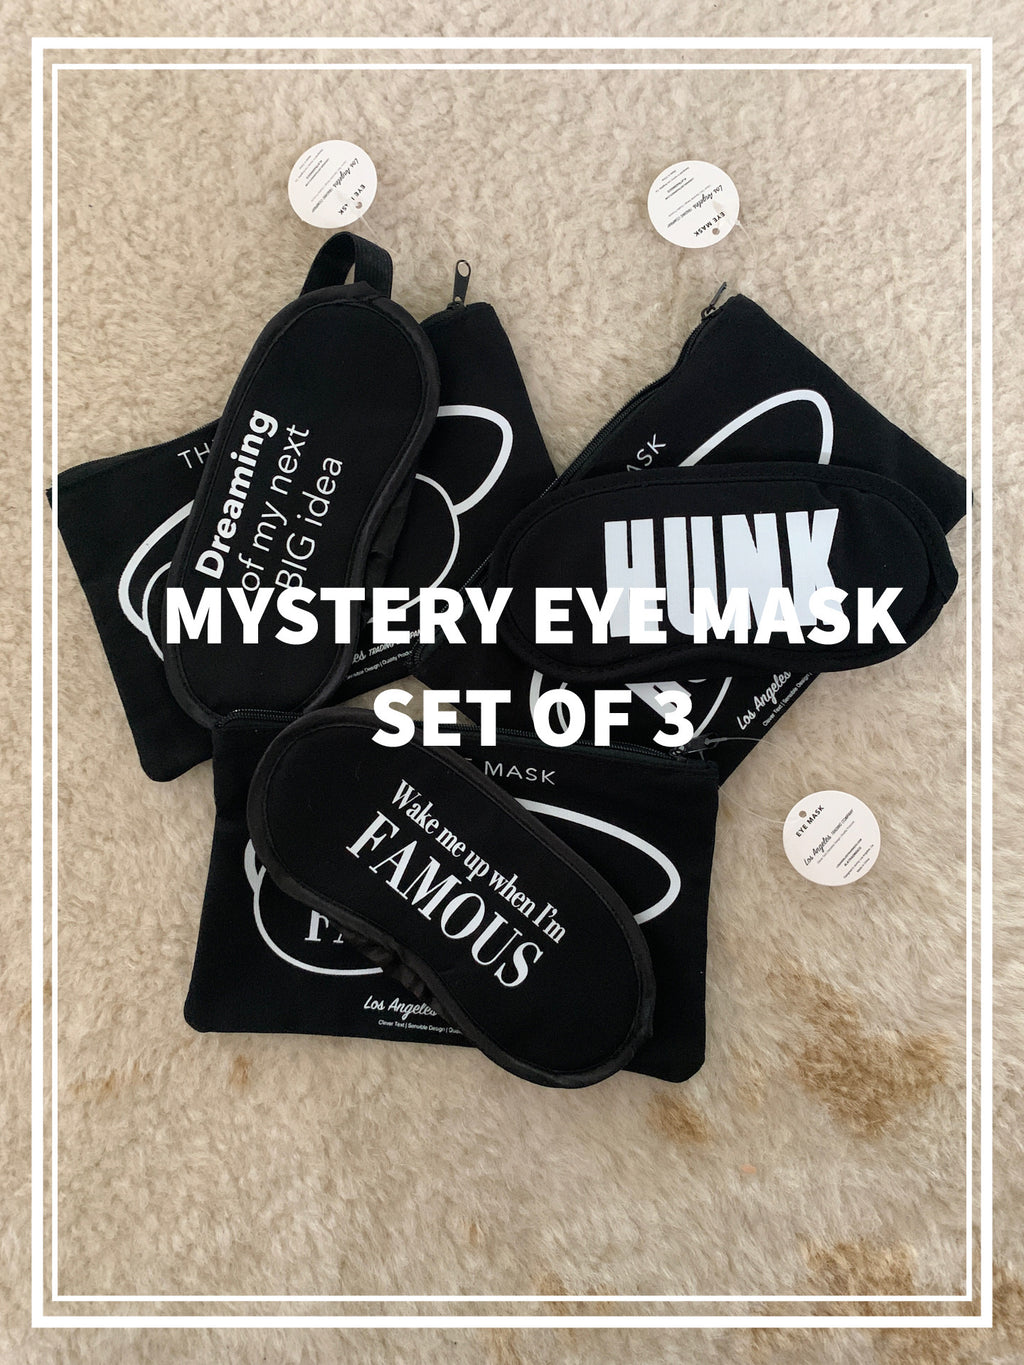 MYSTERY EYE MASK -  Set Of 3